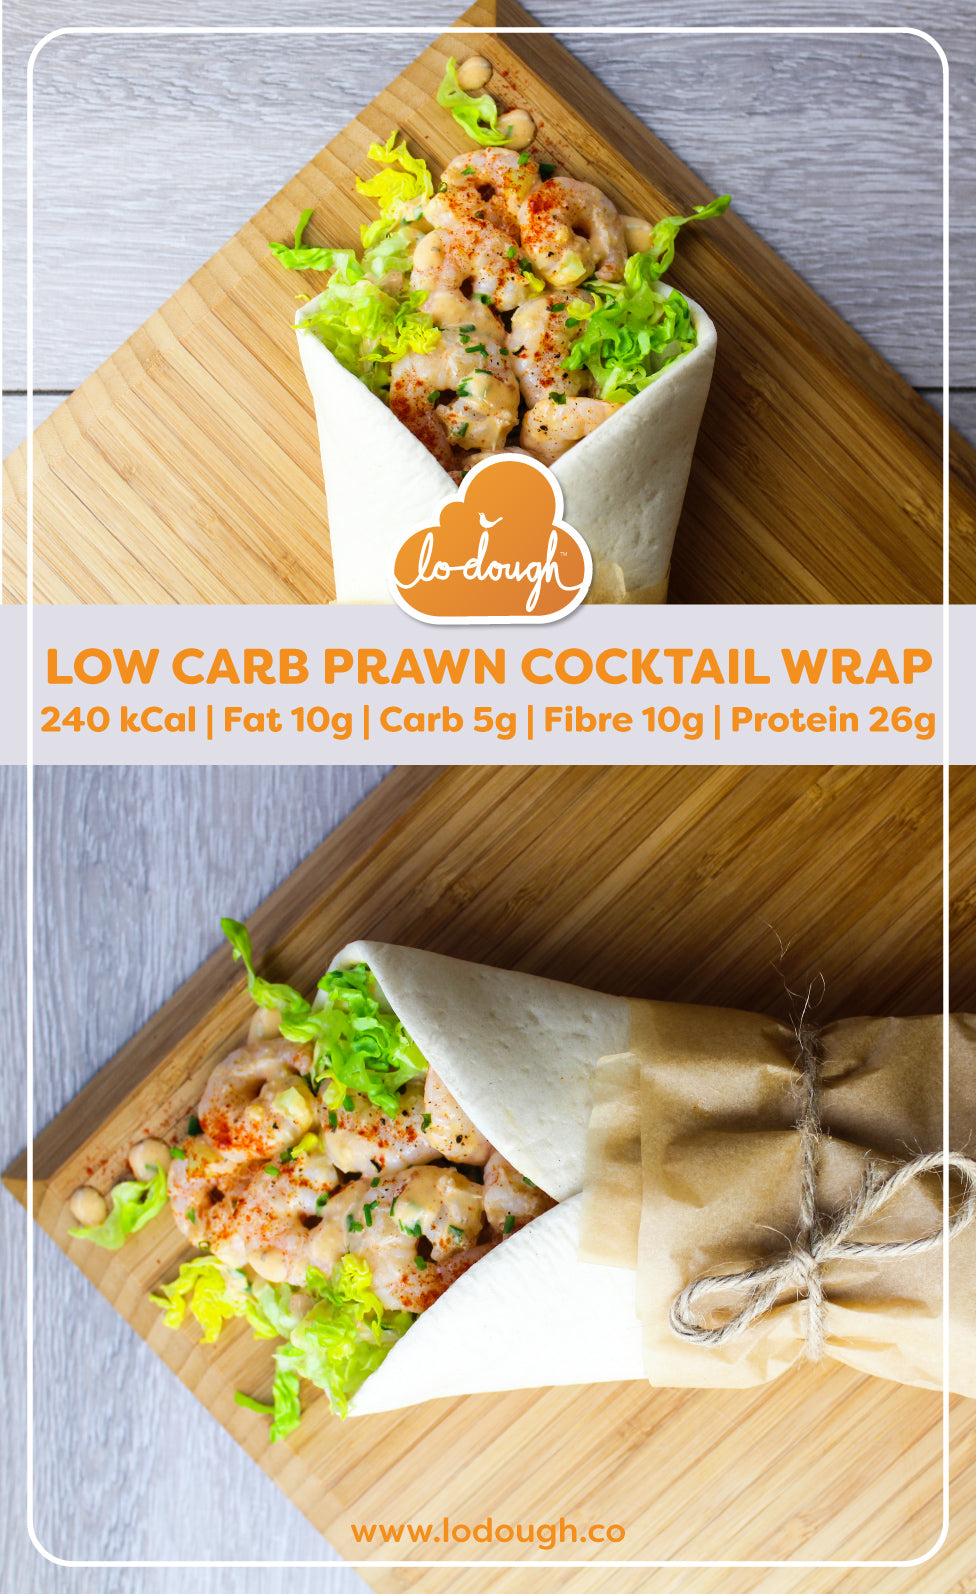 Low Carb Prawn Cocktail Wrap